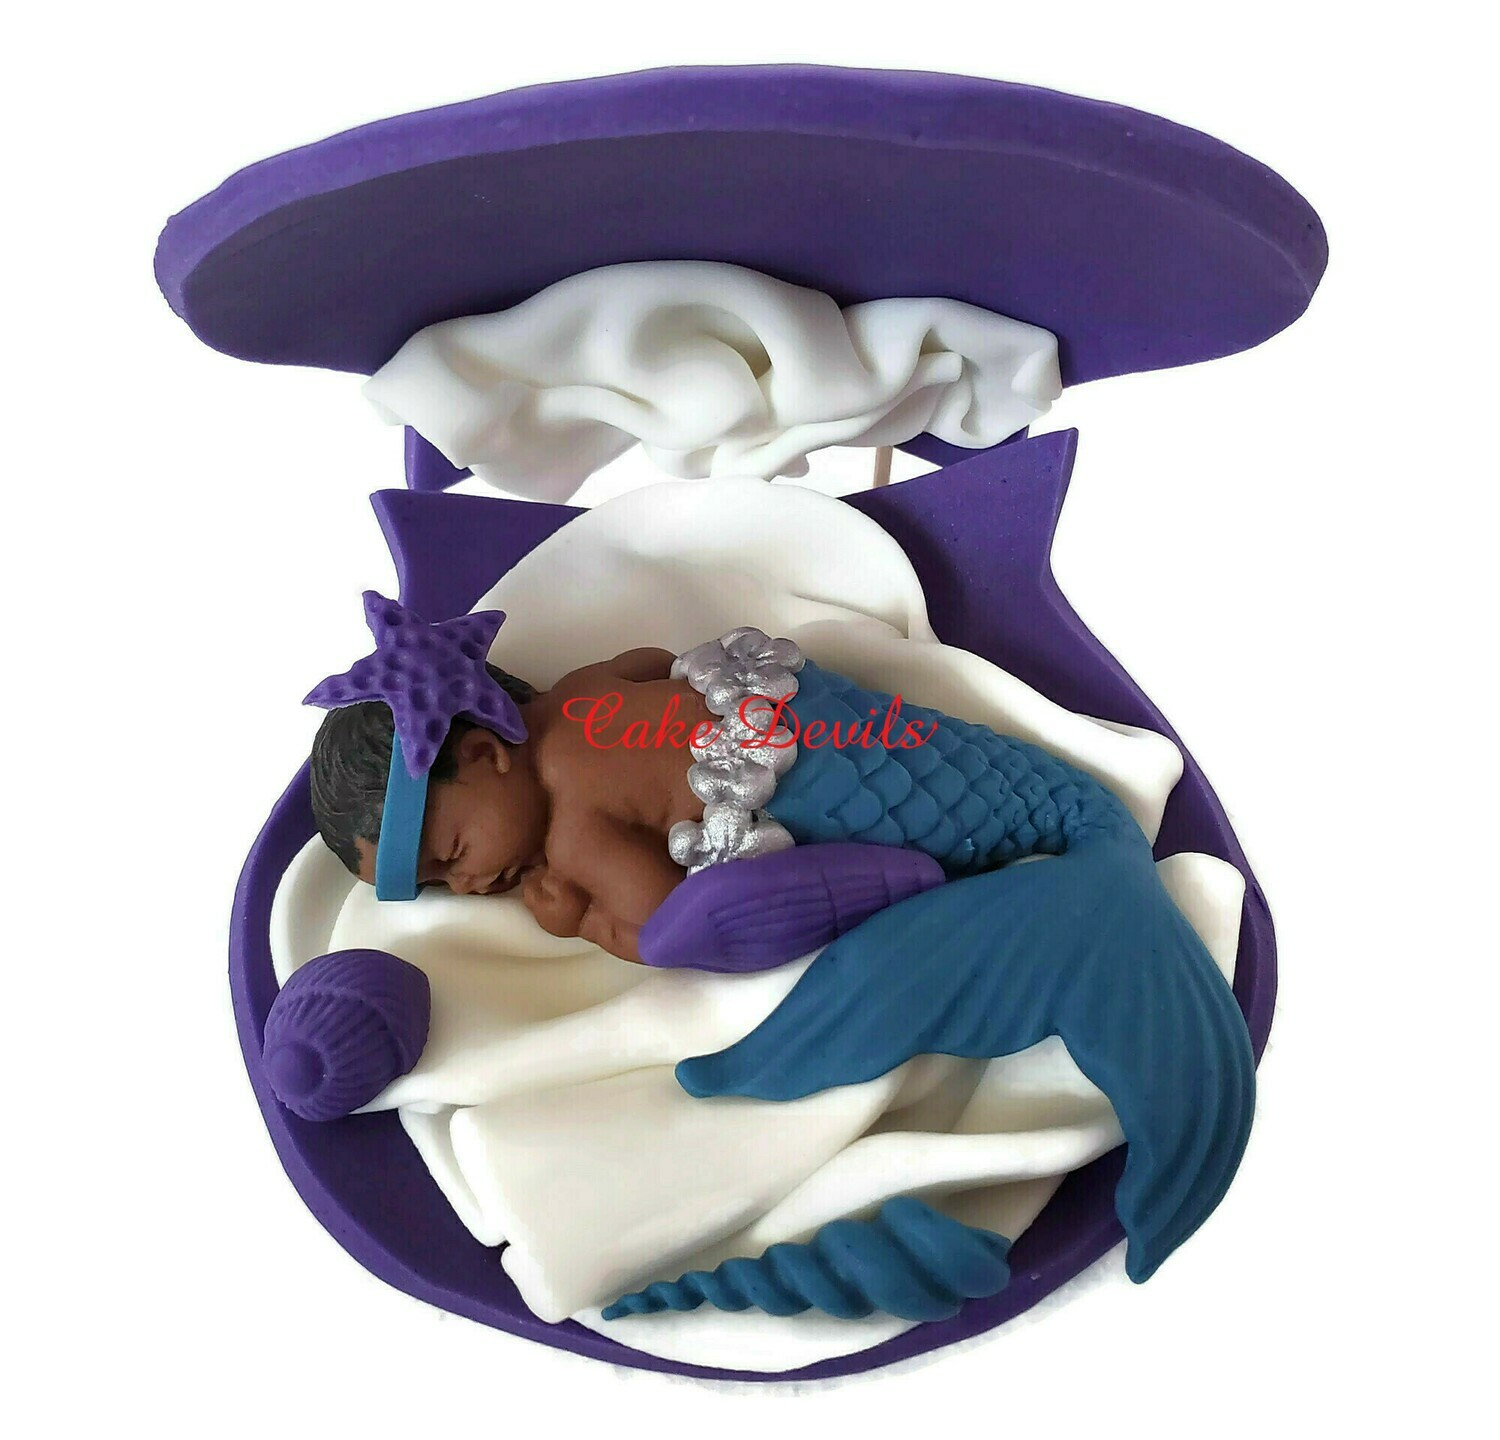 Mermaid Baby Shower Cake Topper Sleeping in a Large Fondant Shell